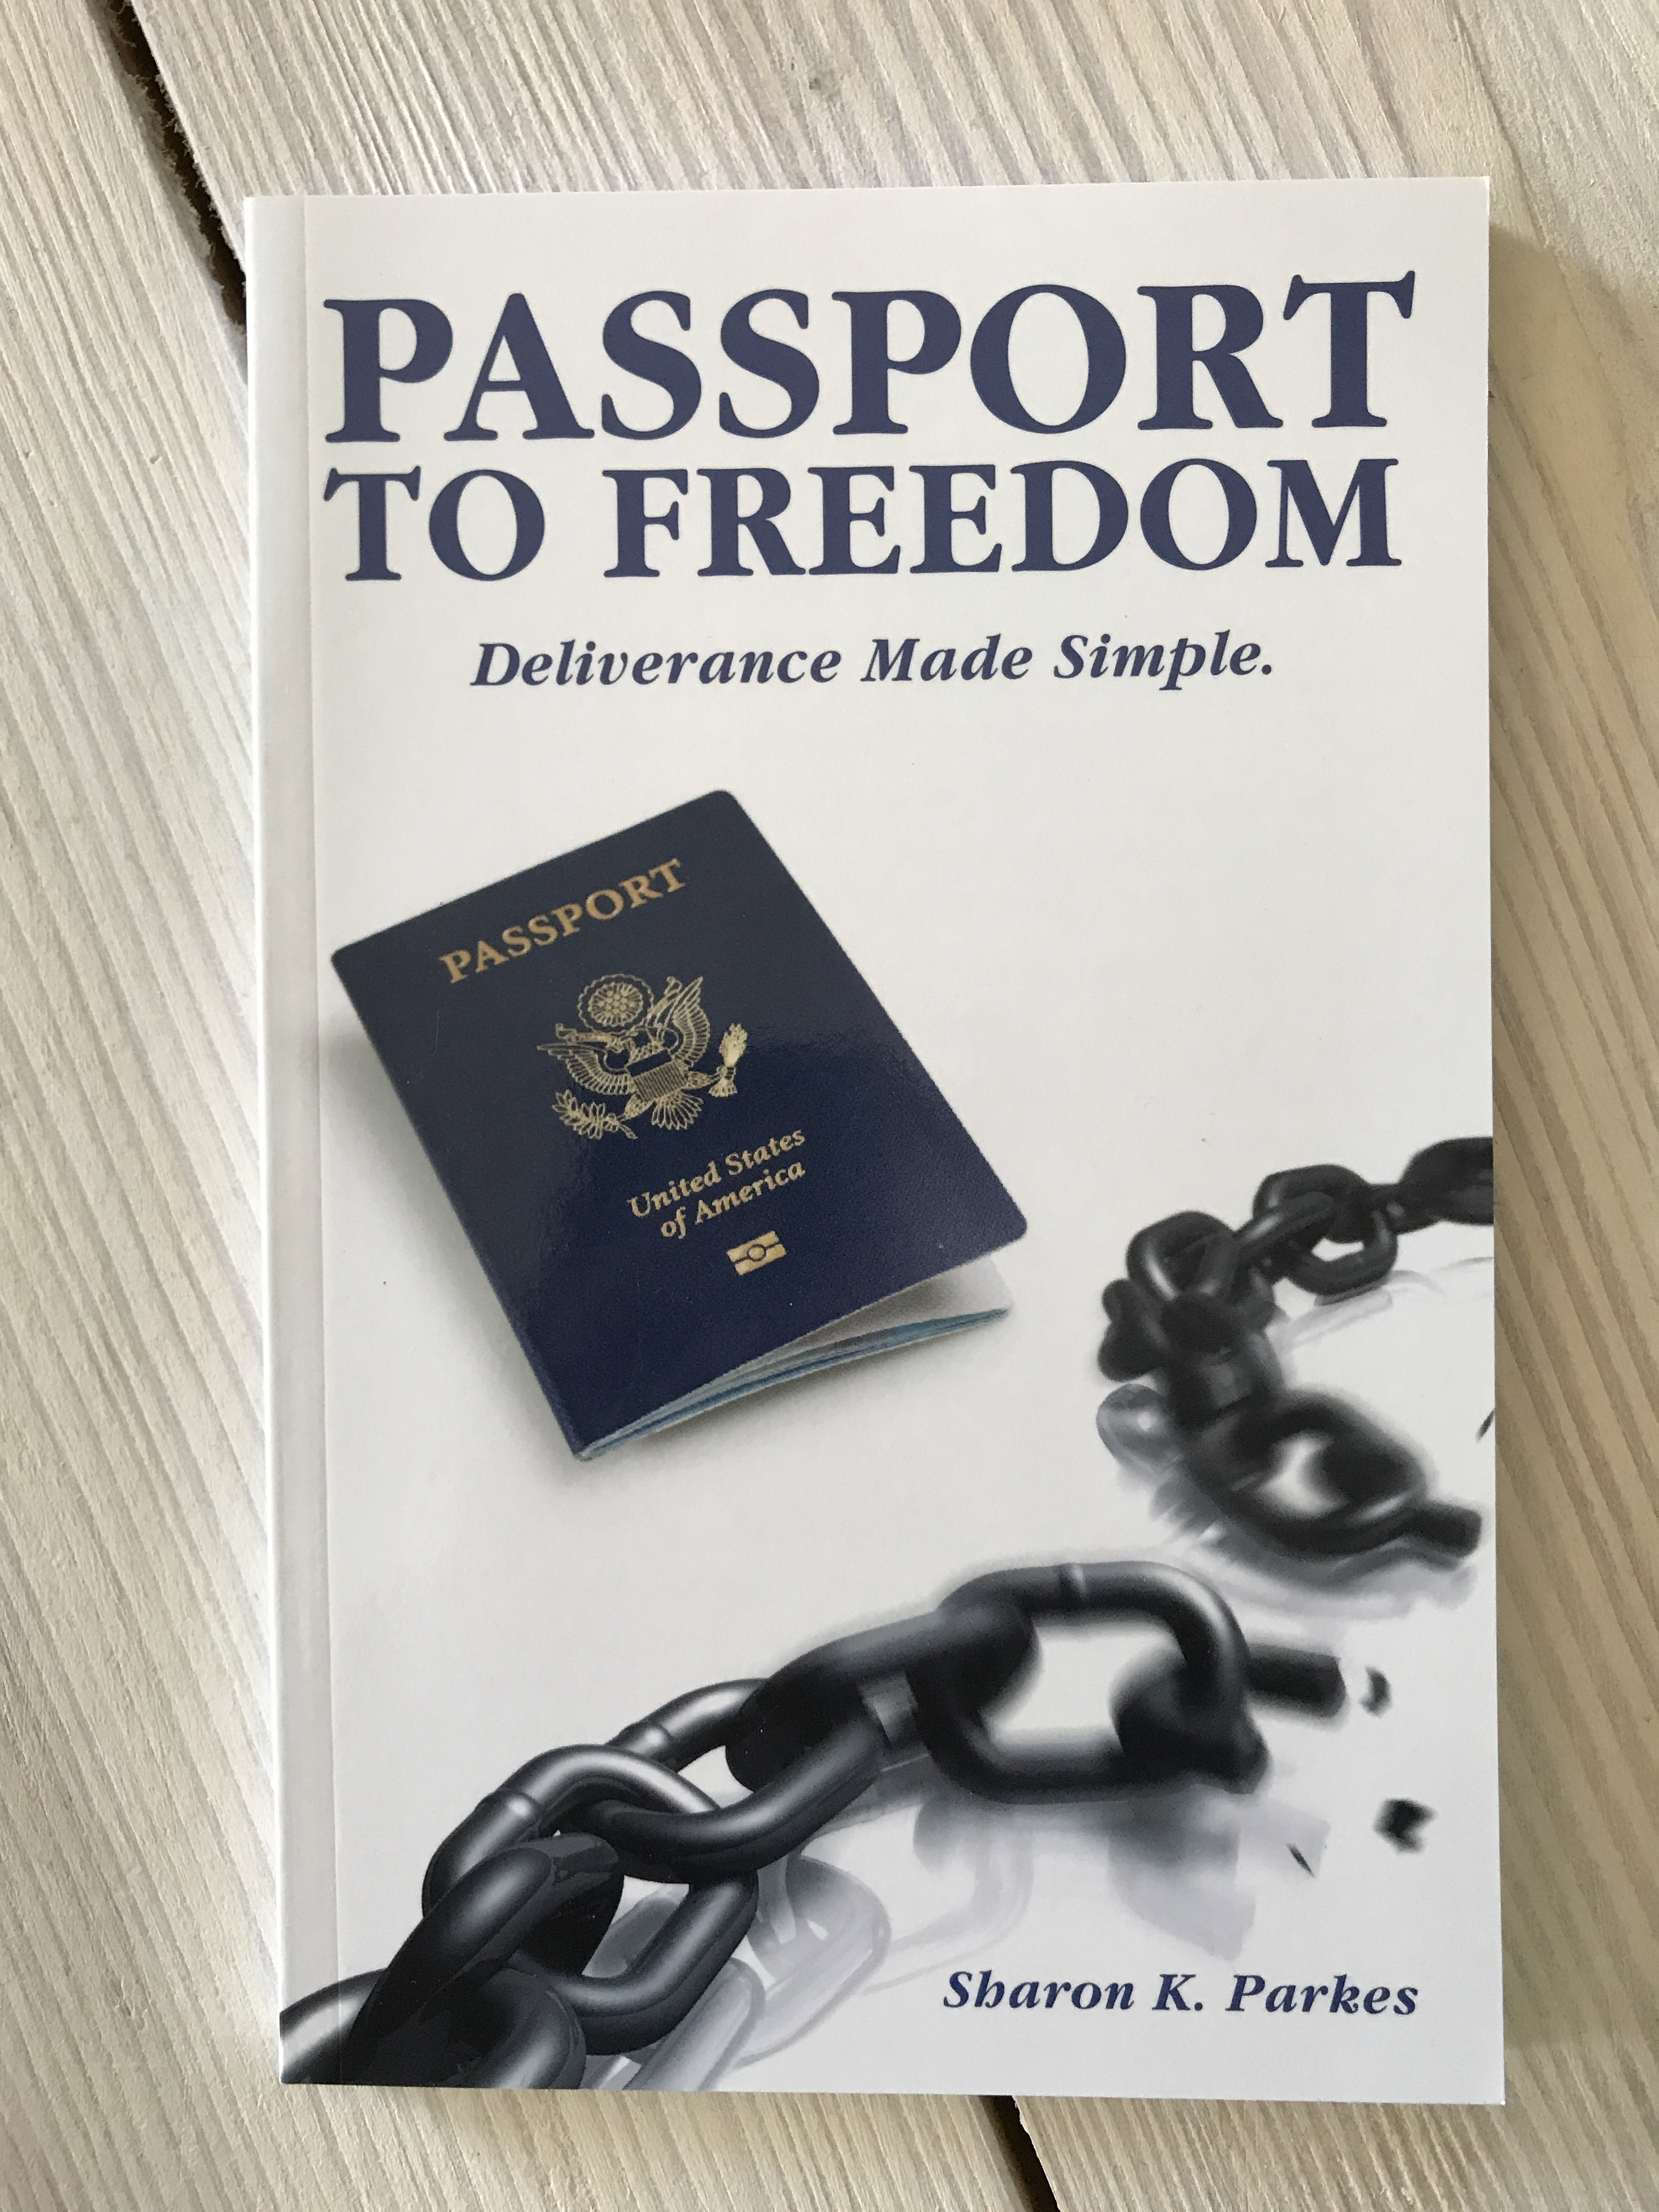 Passport To Freedom: Deliverance Made Simple